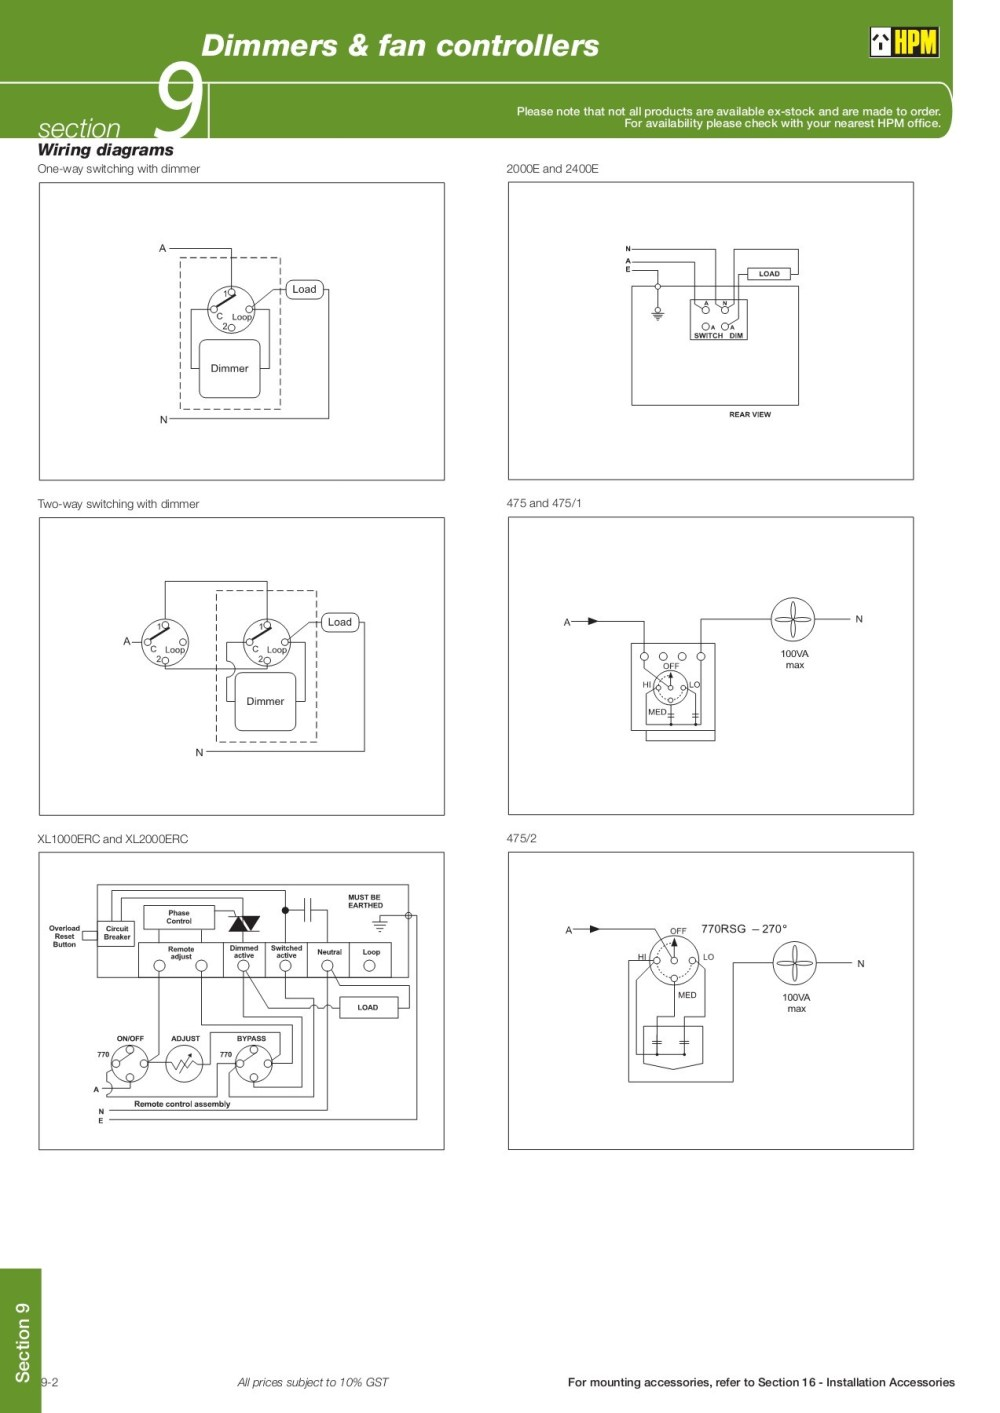 medium resolution of dimmers fan controllers 9 hpm